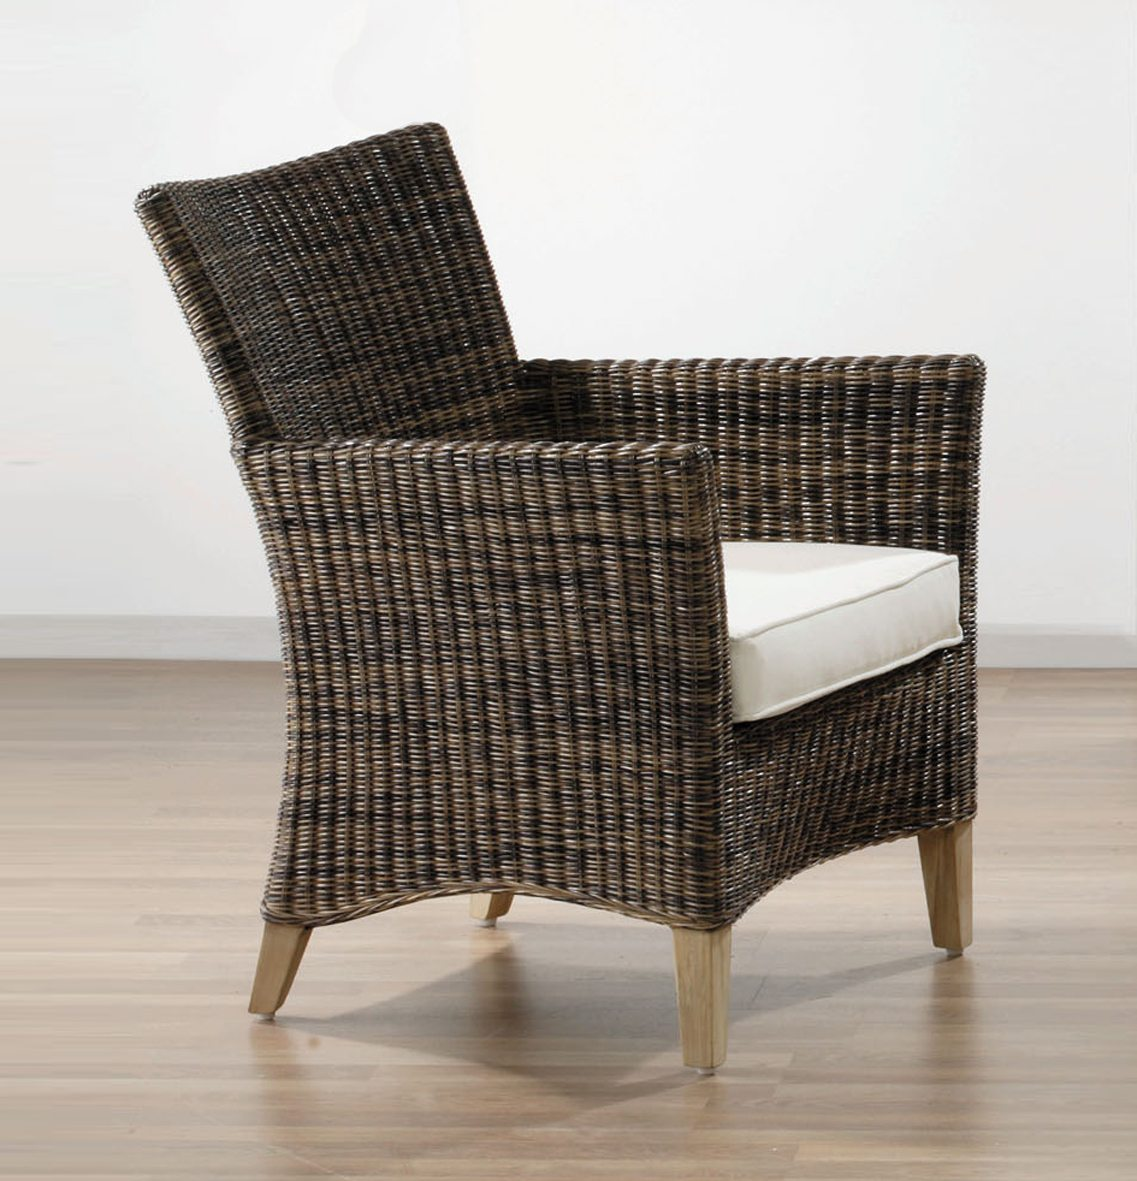 wicker chair : The Lost Ogle